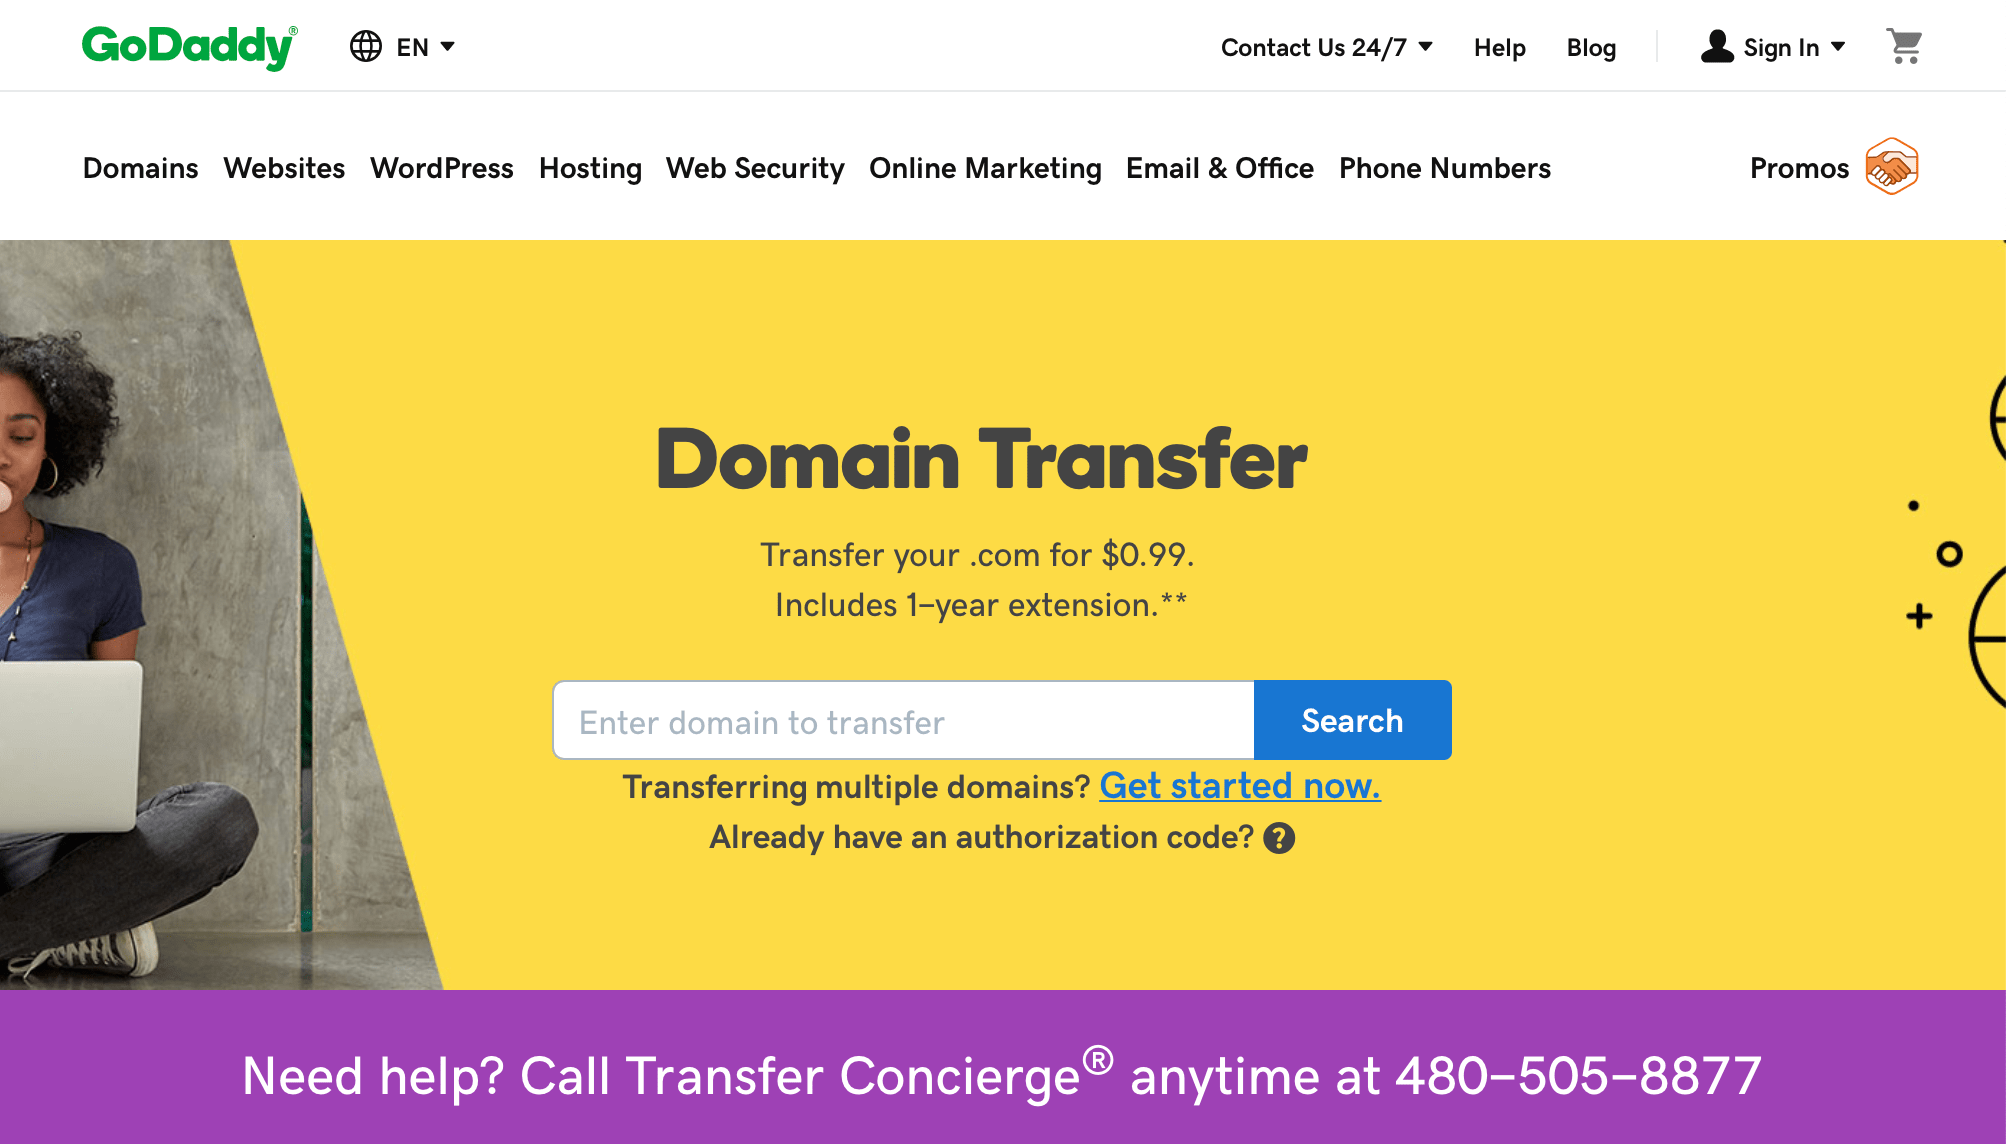 Transfer Domain Name At GoDaddy for $0.99